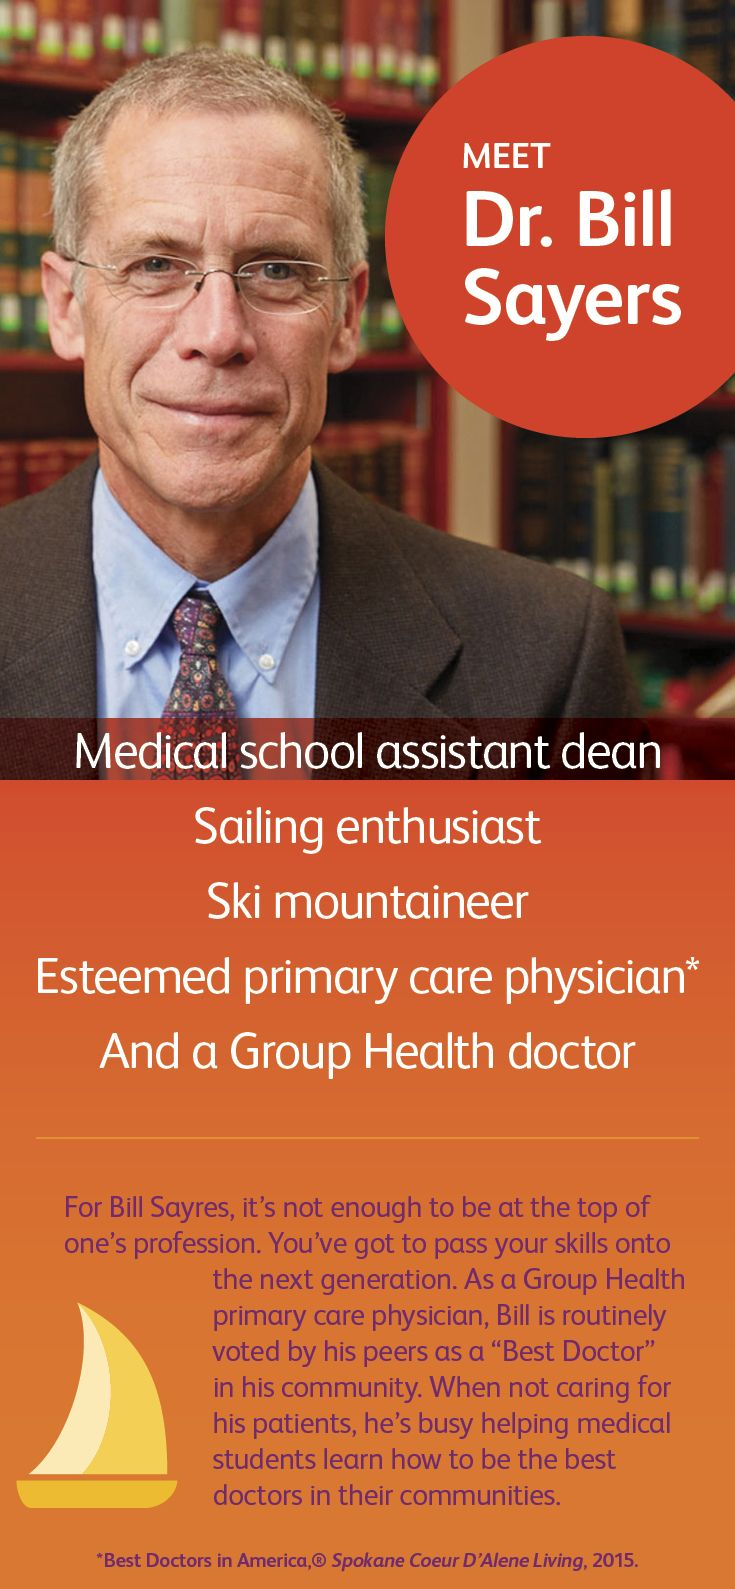 As A Group Health Primary Care Physician Dr Bill Sayers Is